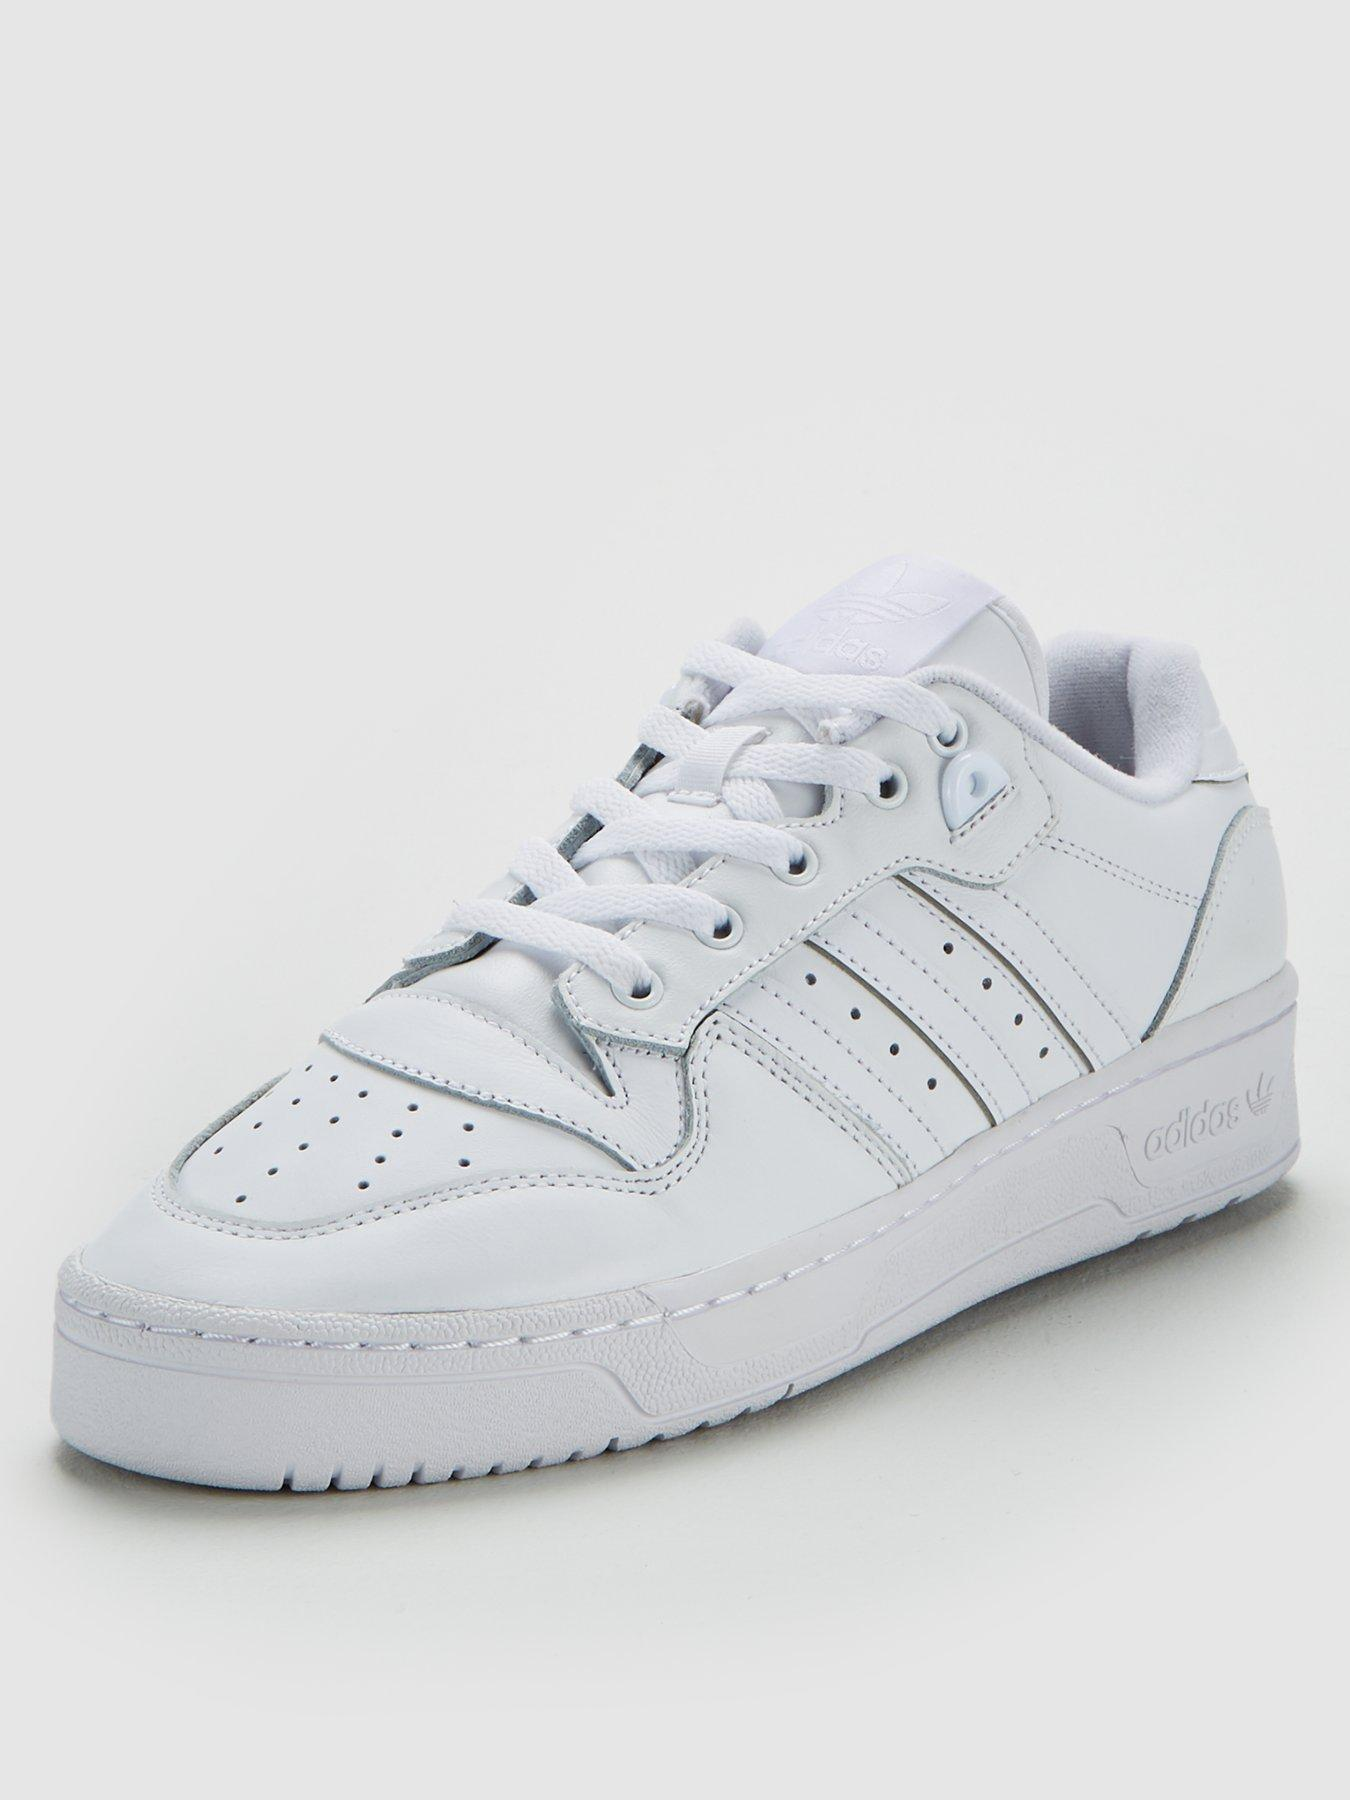 adidas Trainers | Mens adidas Trainers